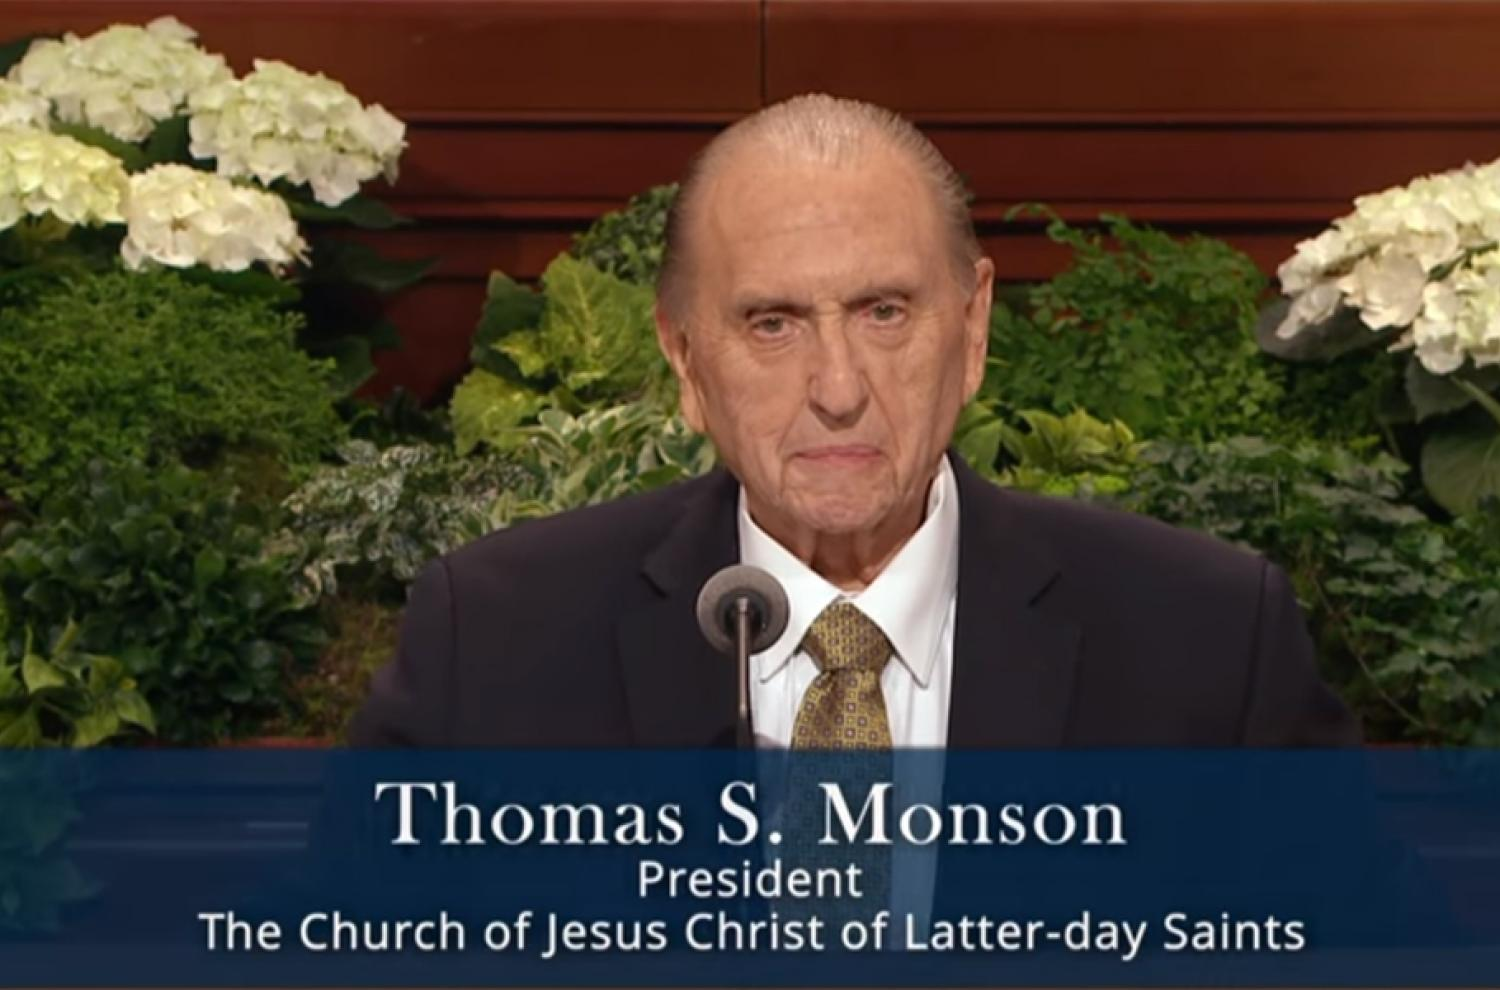 Thomas S. Monson at the April 2017 Conference via lds.org